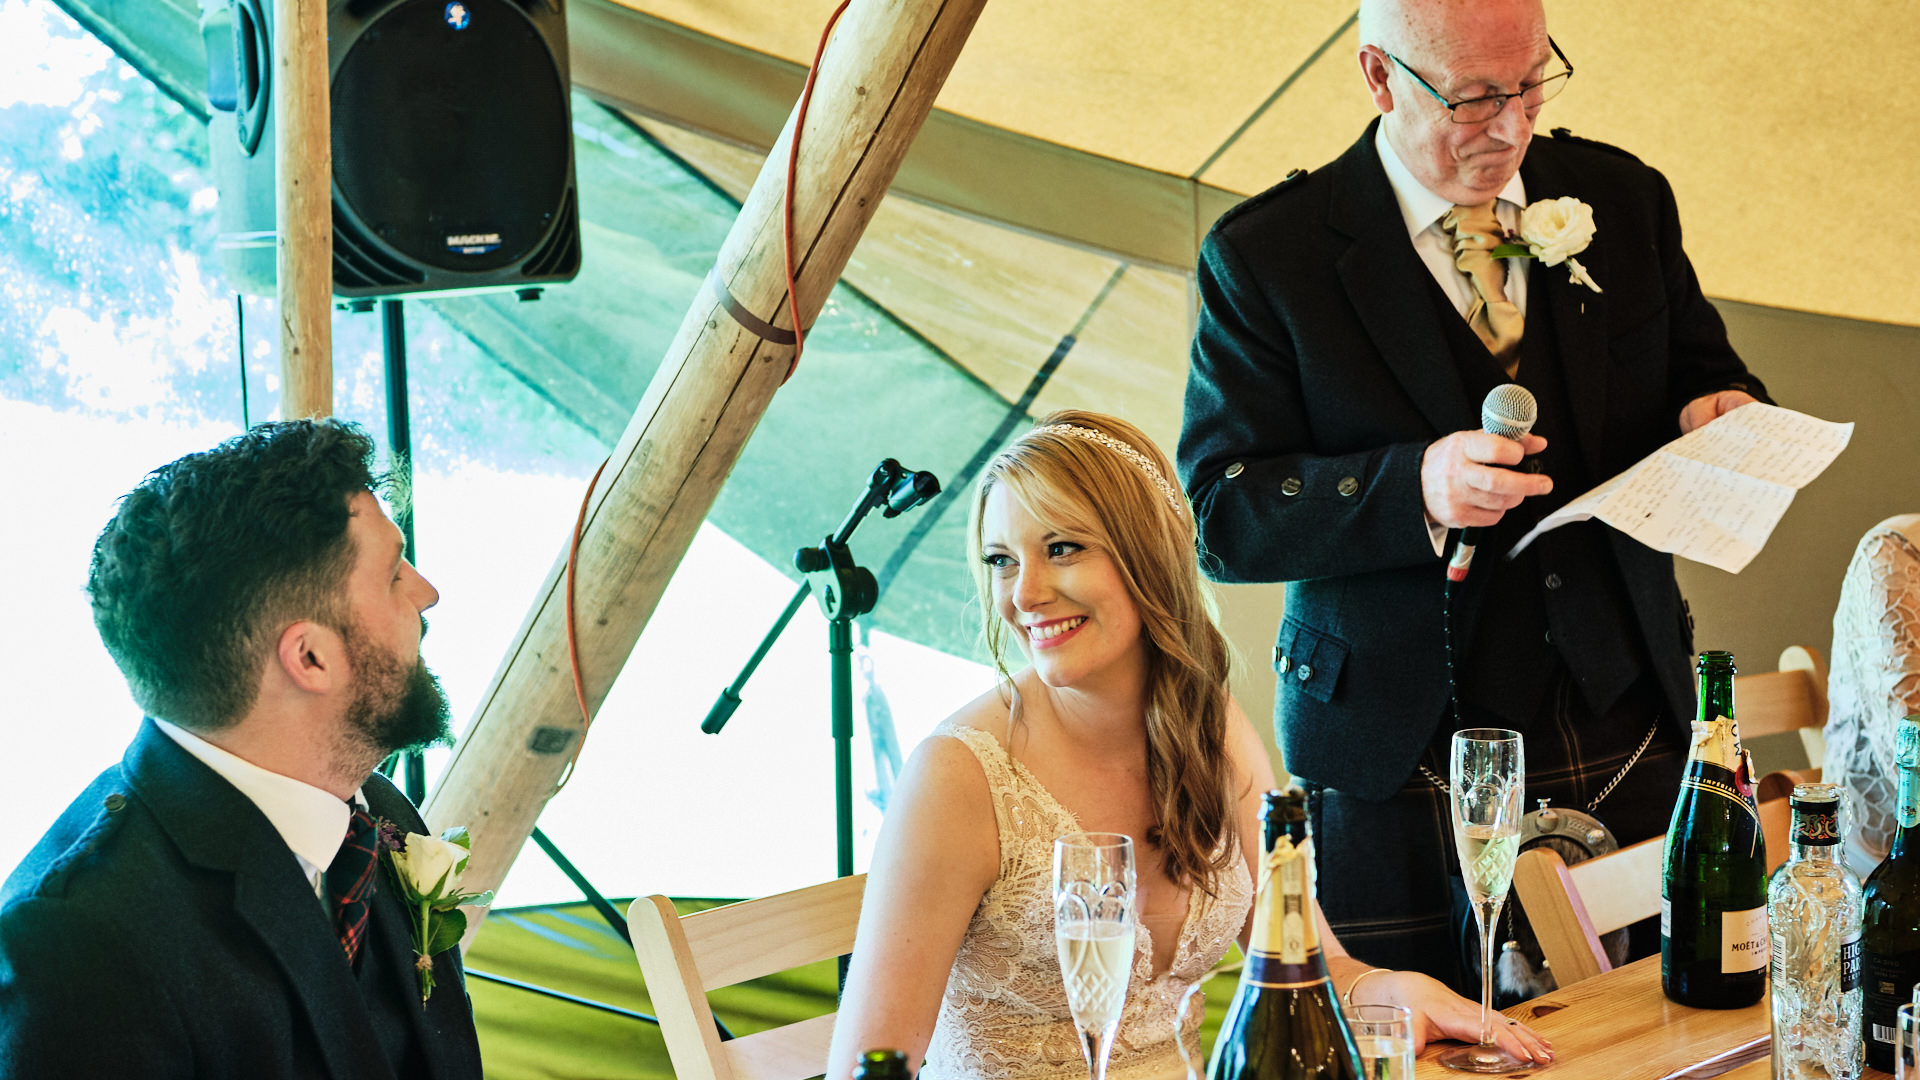 colour photograph of a bride and groom sharing a private moment during her father's speech at his daughter's wedding